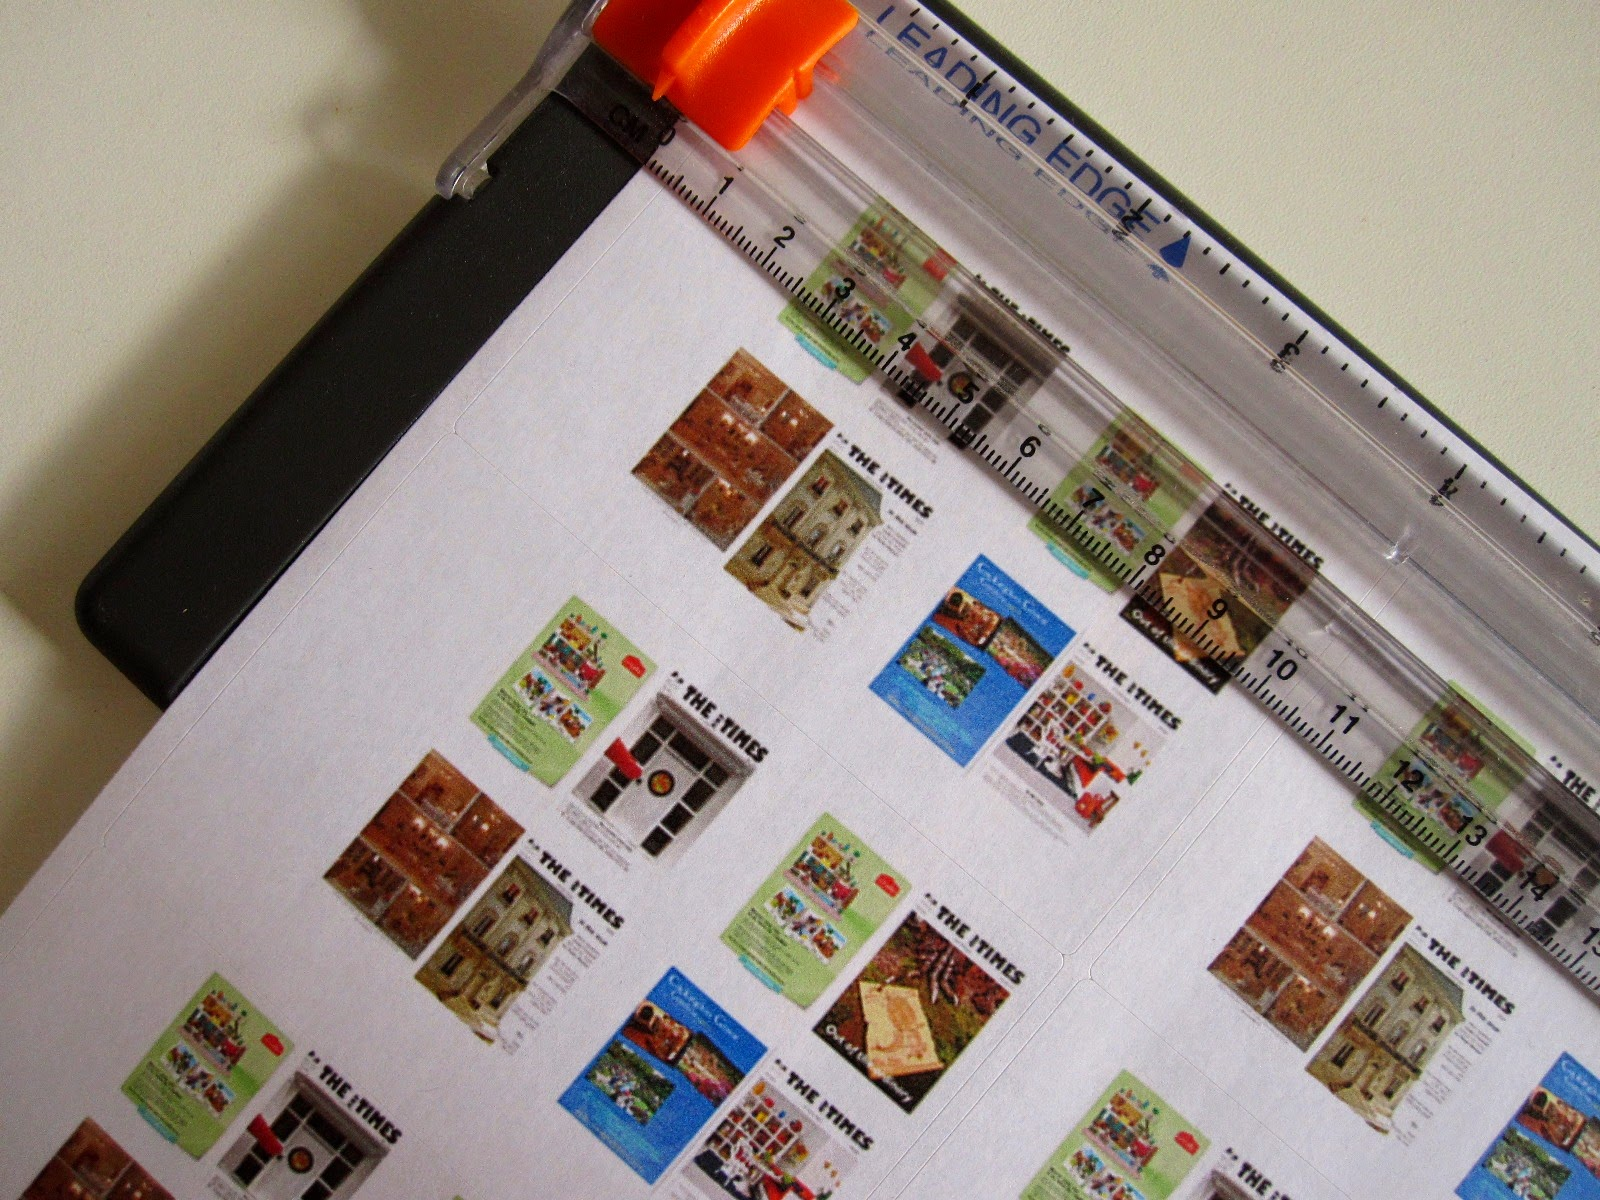 Sticker sheet printed with dolls house miniature versions of The tiny Times magazine, in a Fiskars cutter.